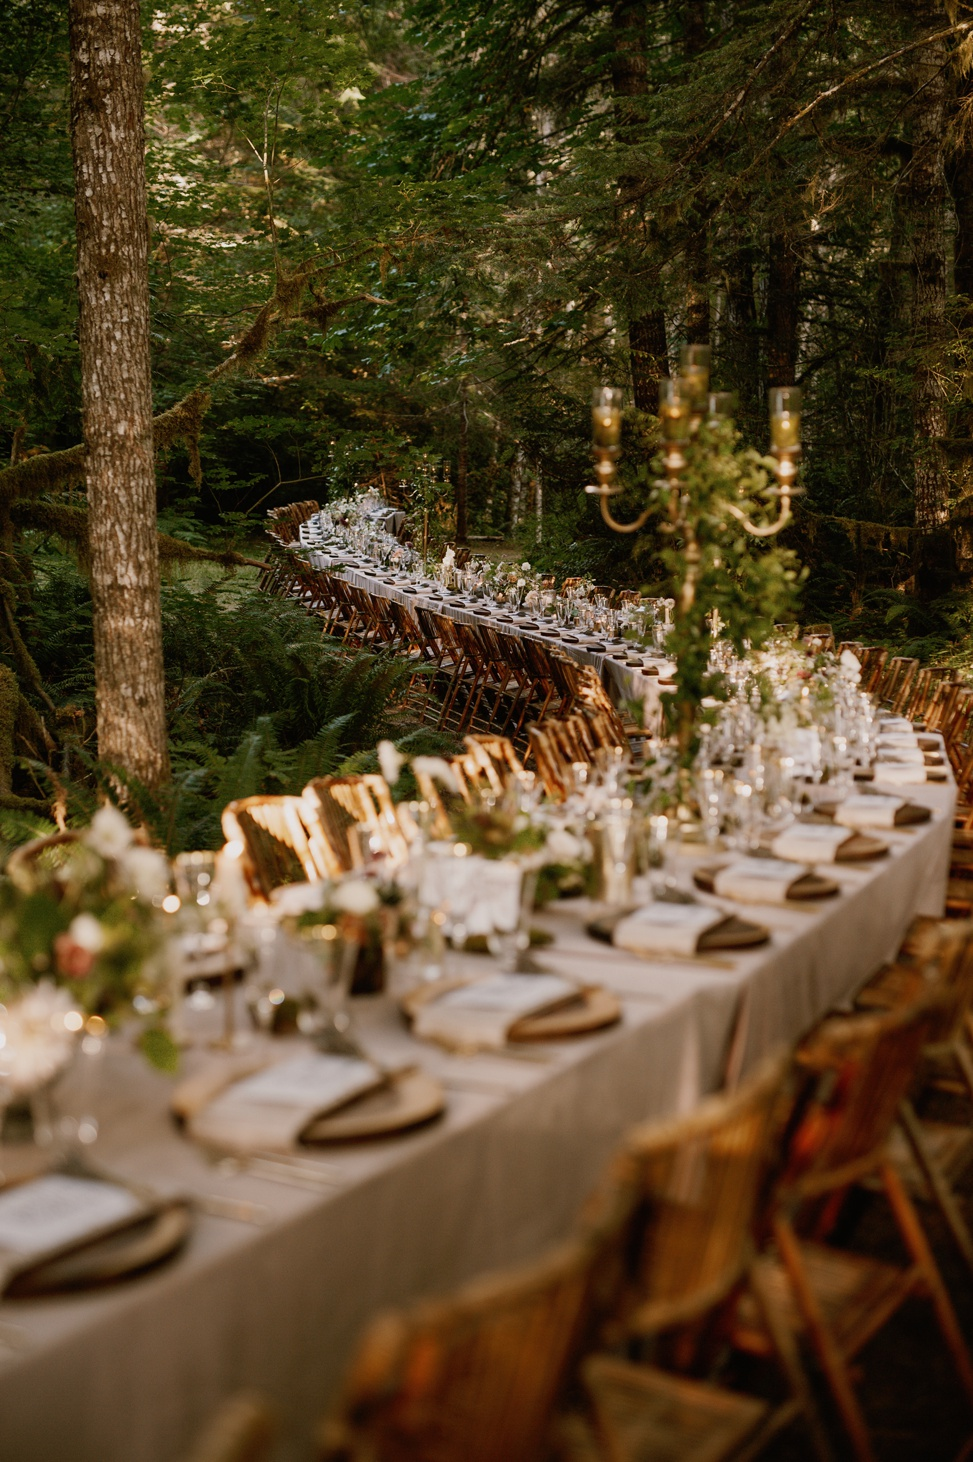 This wedding should be seen at least because of the longest reception table in the woods